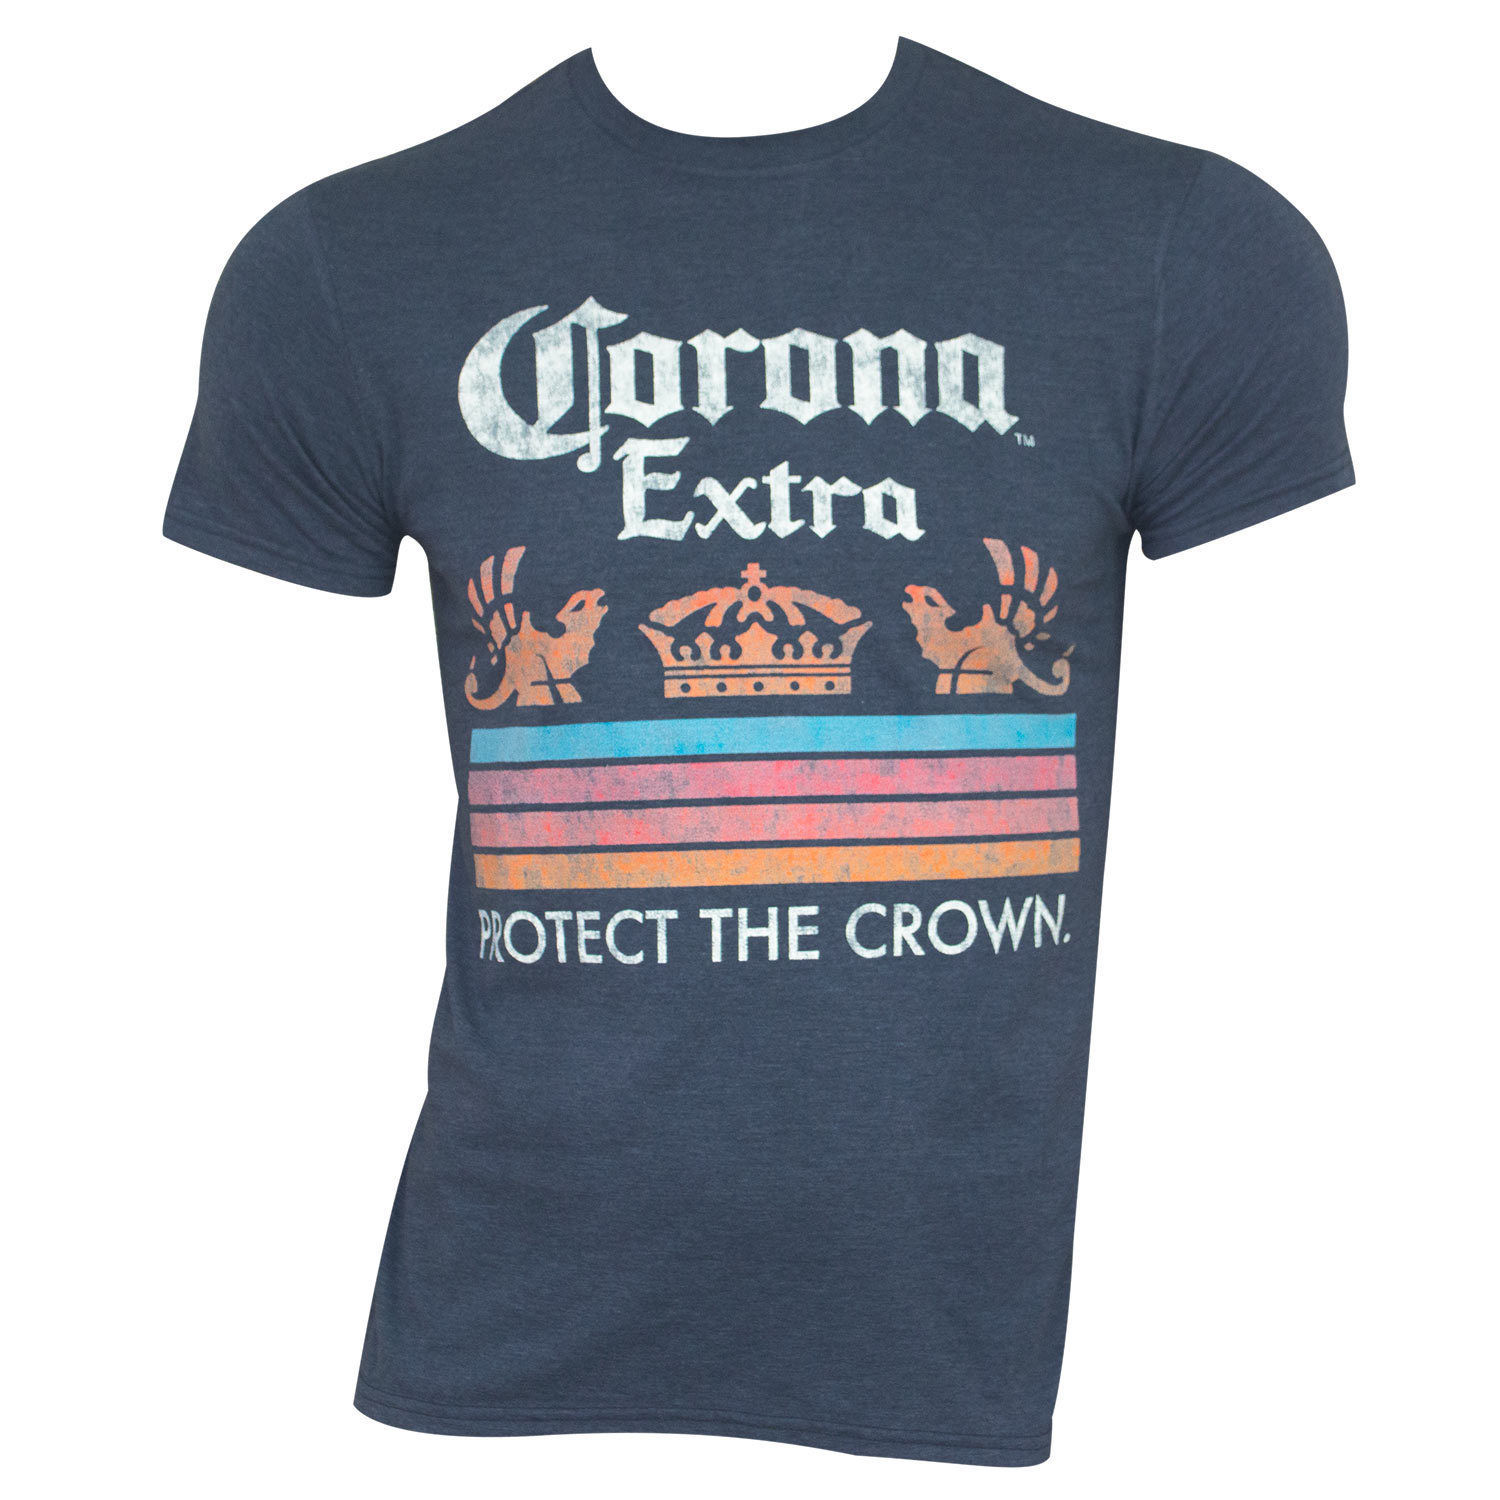 c3d5a092a0f512 Corona Extra Protect The Crown Tee Shirt Blue and 48 similar items. S l1600